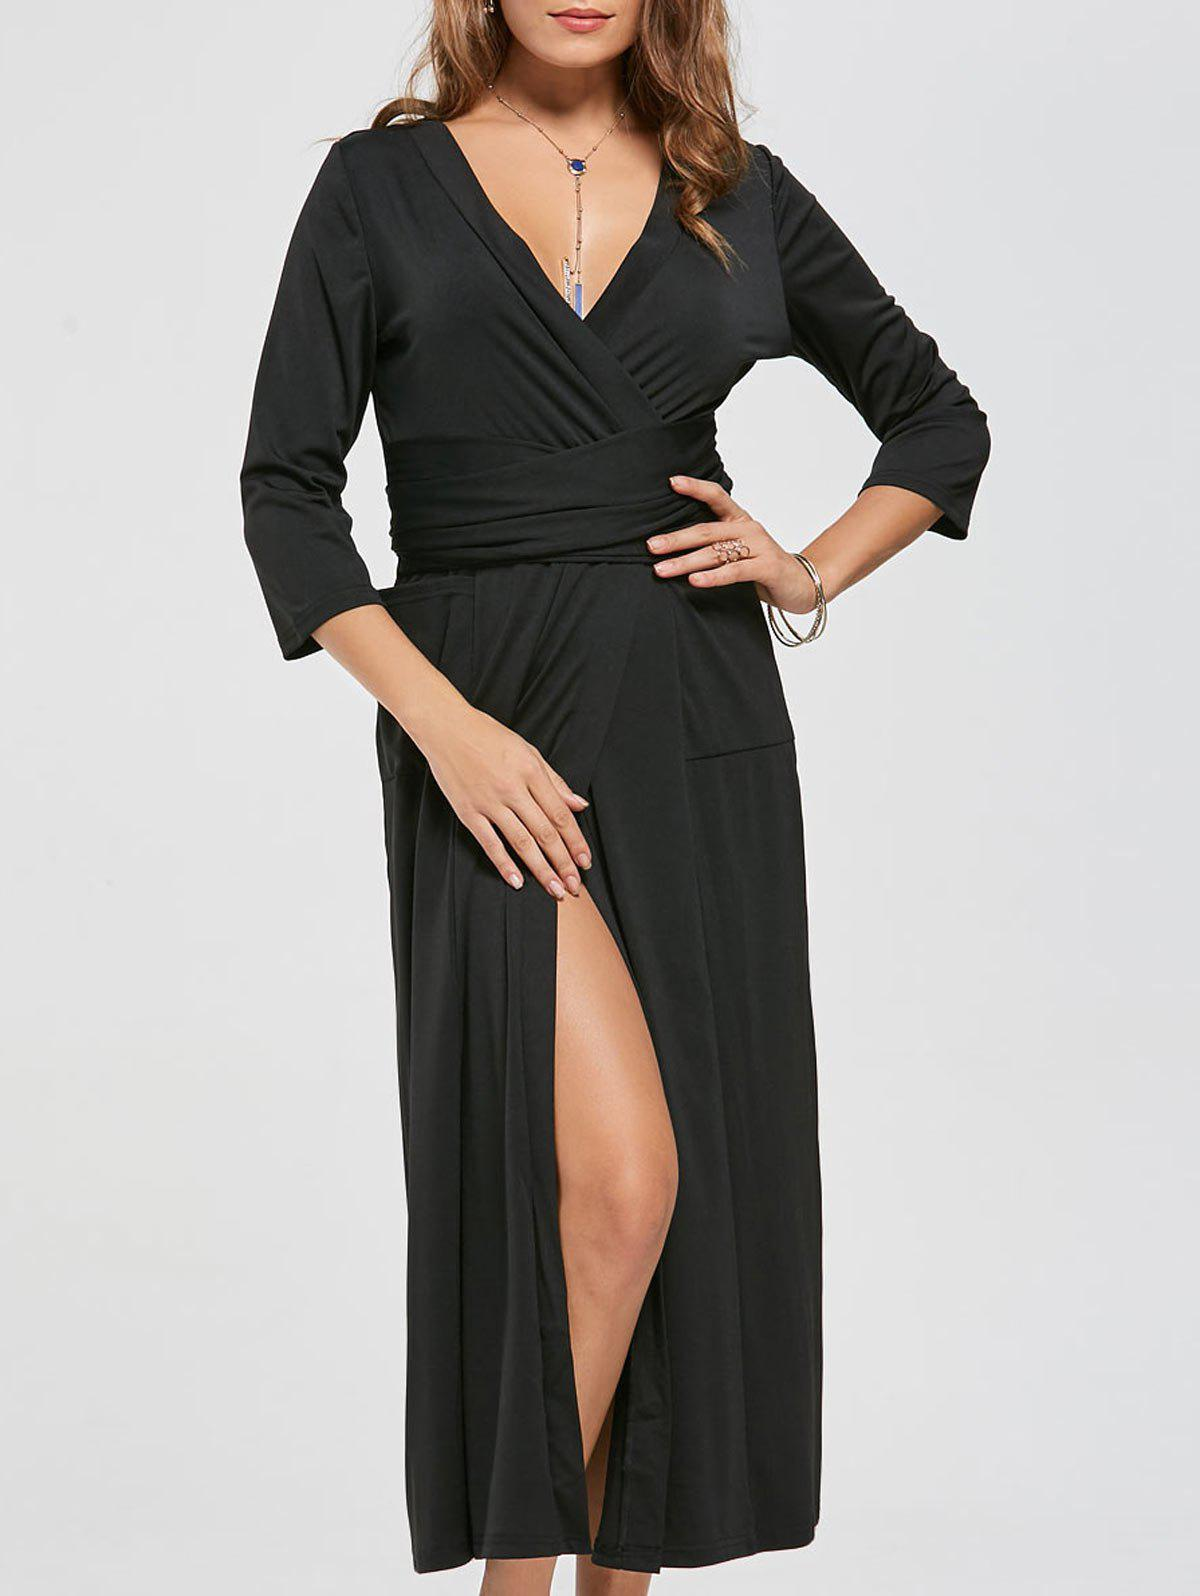 V Neck Pockets High Slit Midi Surplice Dress - BLACK 2XL